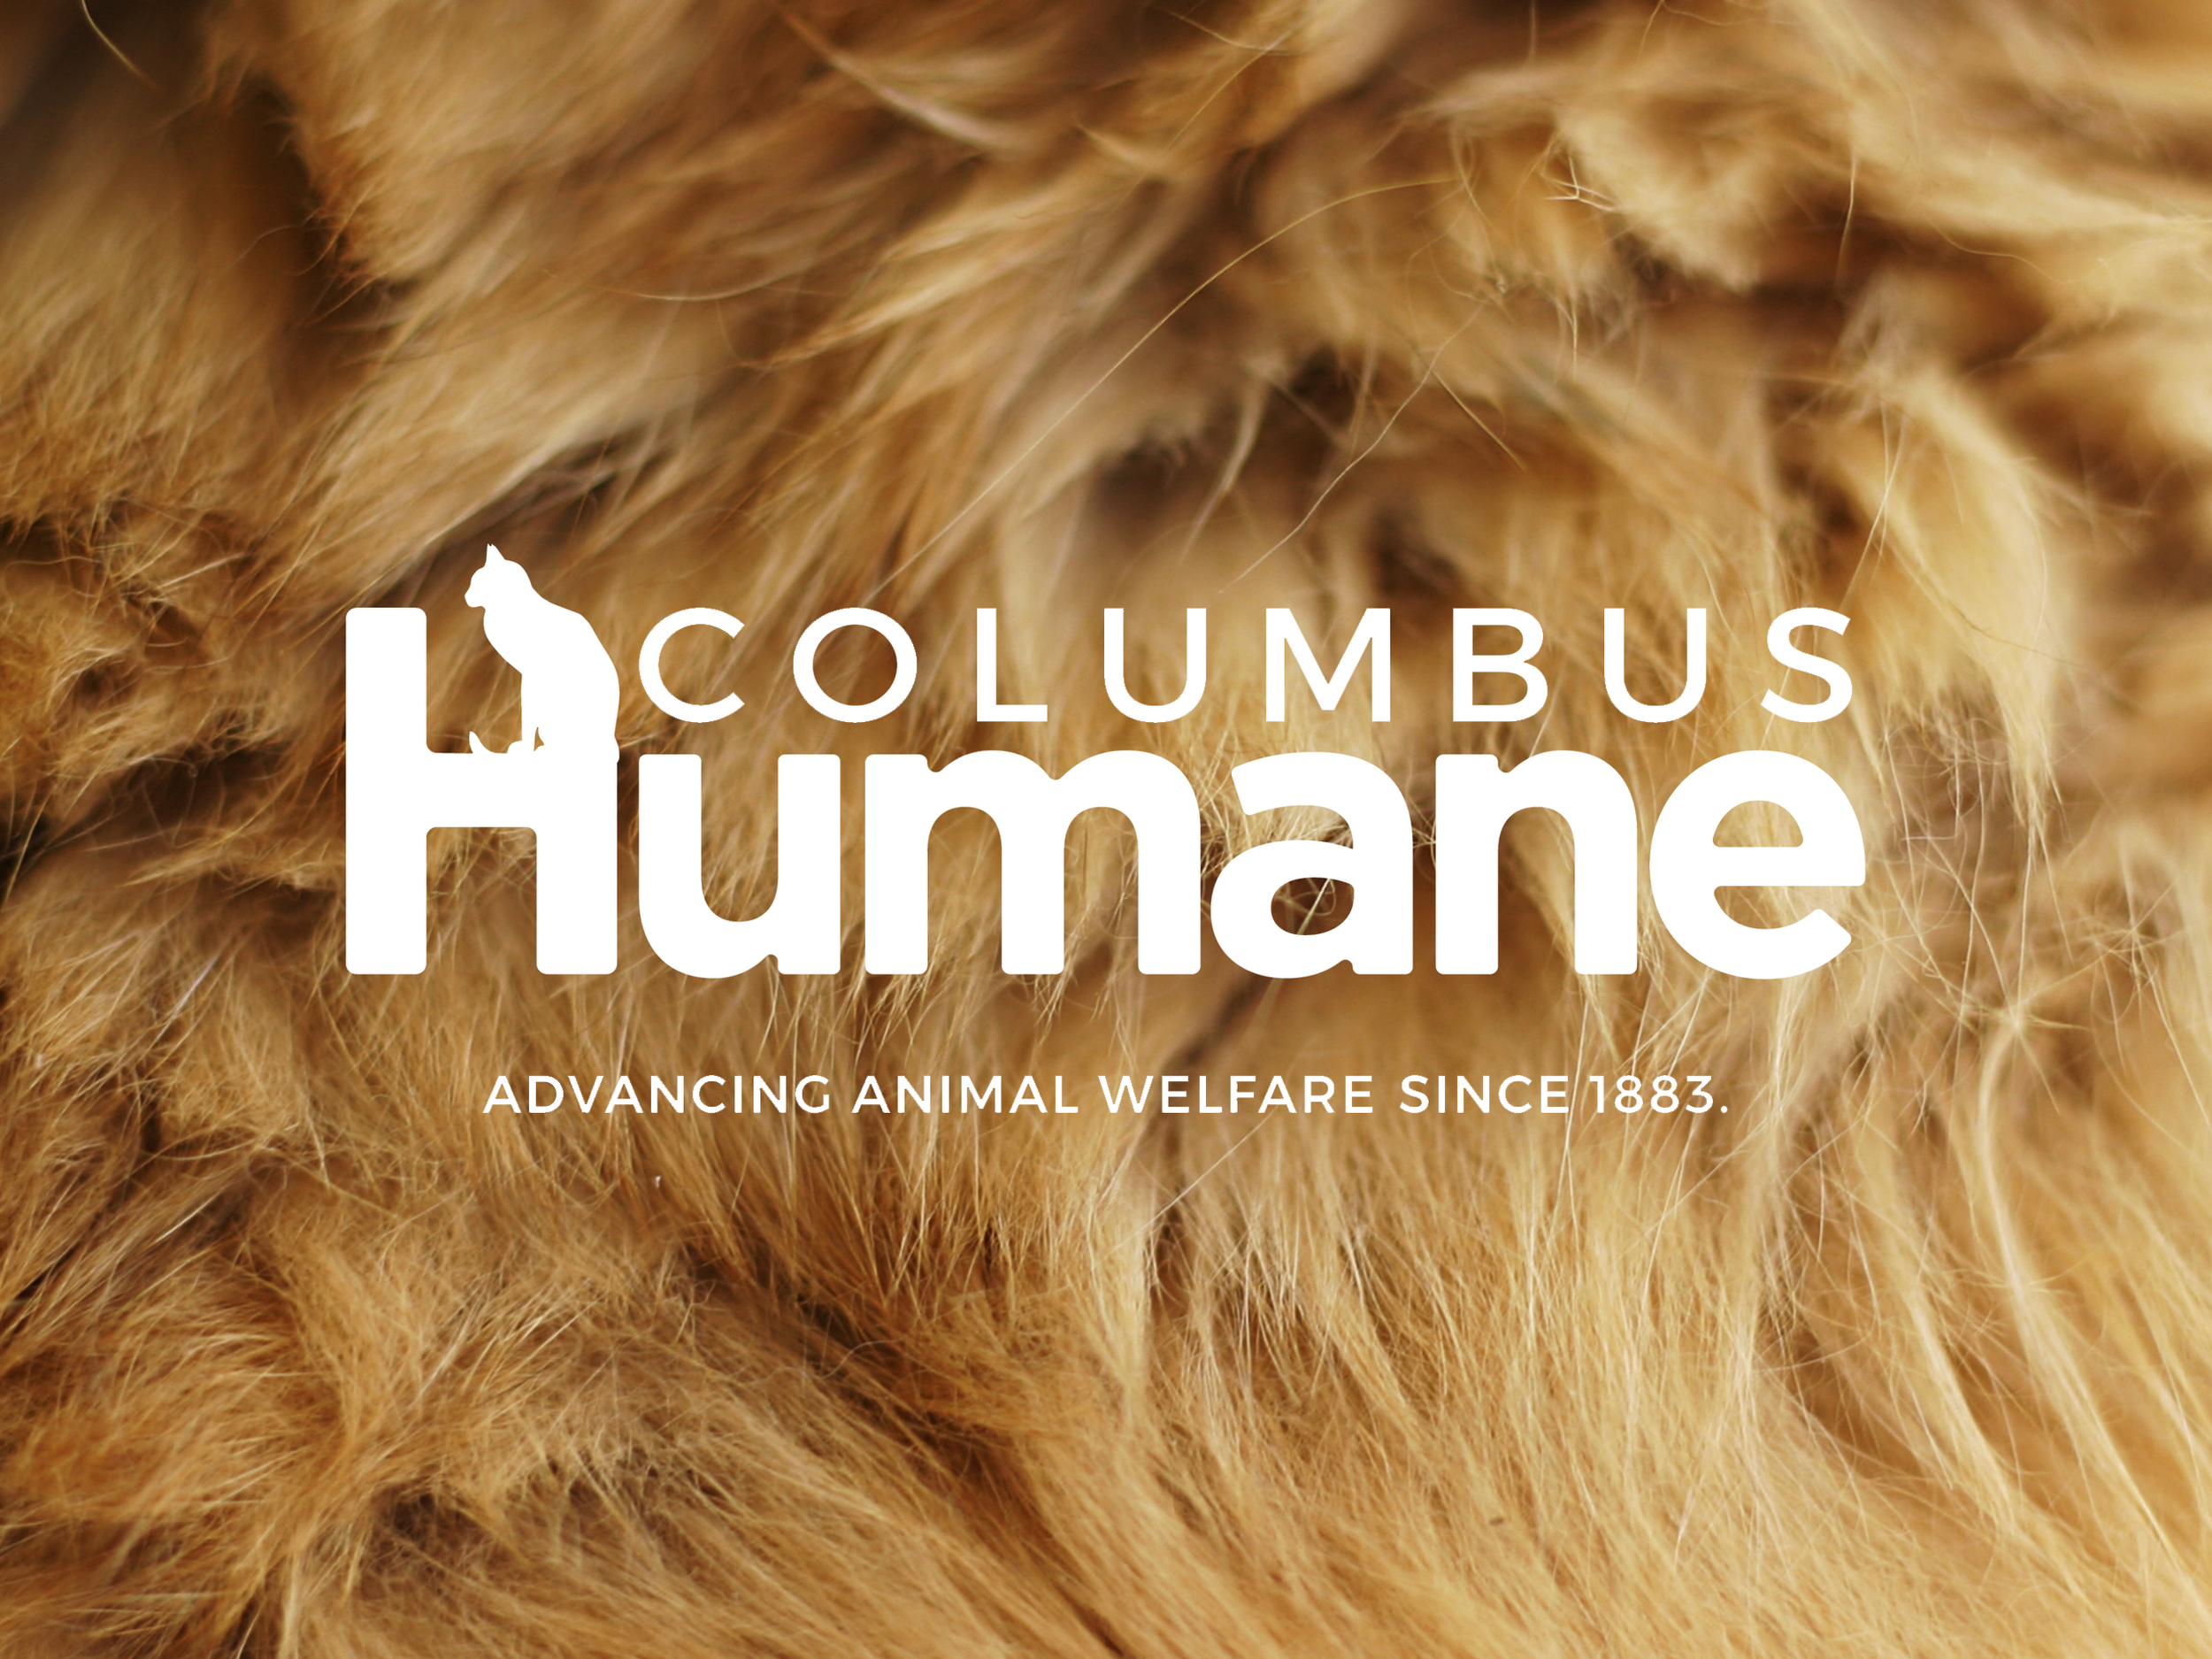 SEPTEMBER 2017 - Capital Area Humane society was rebranded and the name was changed to Columbus Humane.